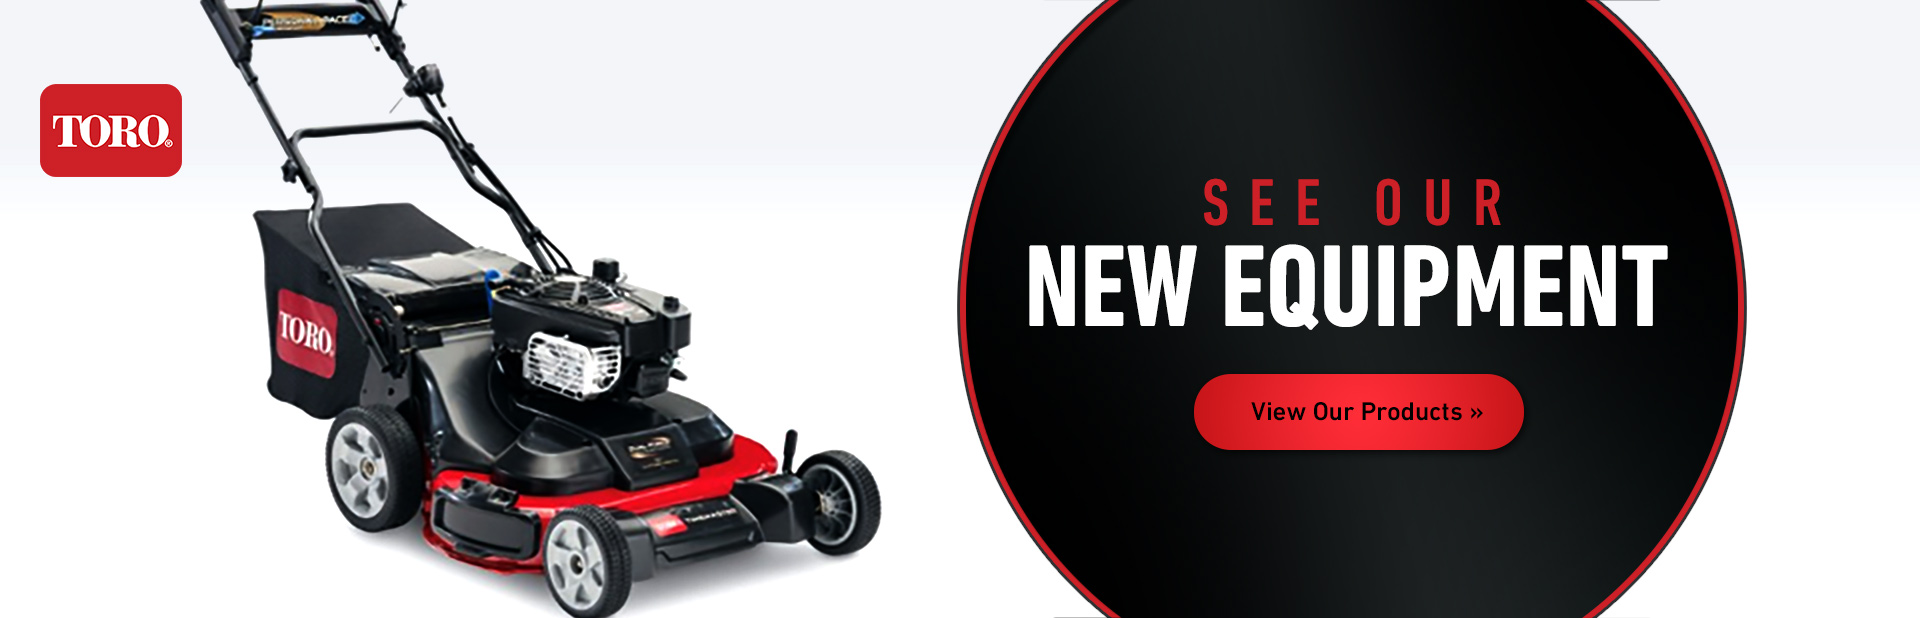 Click here to view equipment from Toro.